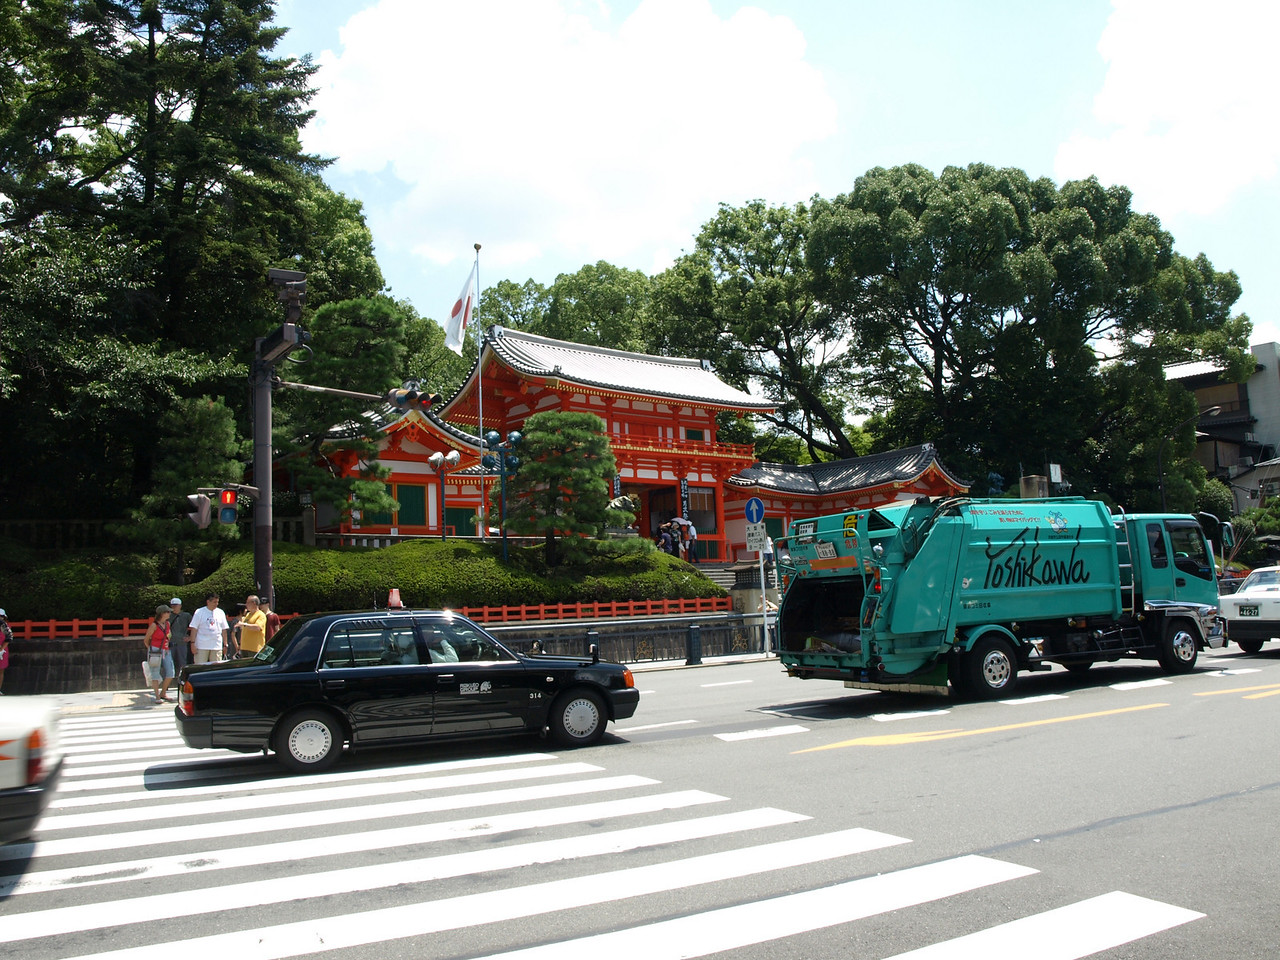 Finally fed, we head back to the Yasaka Shrine